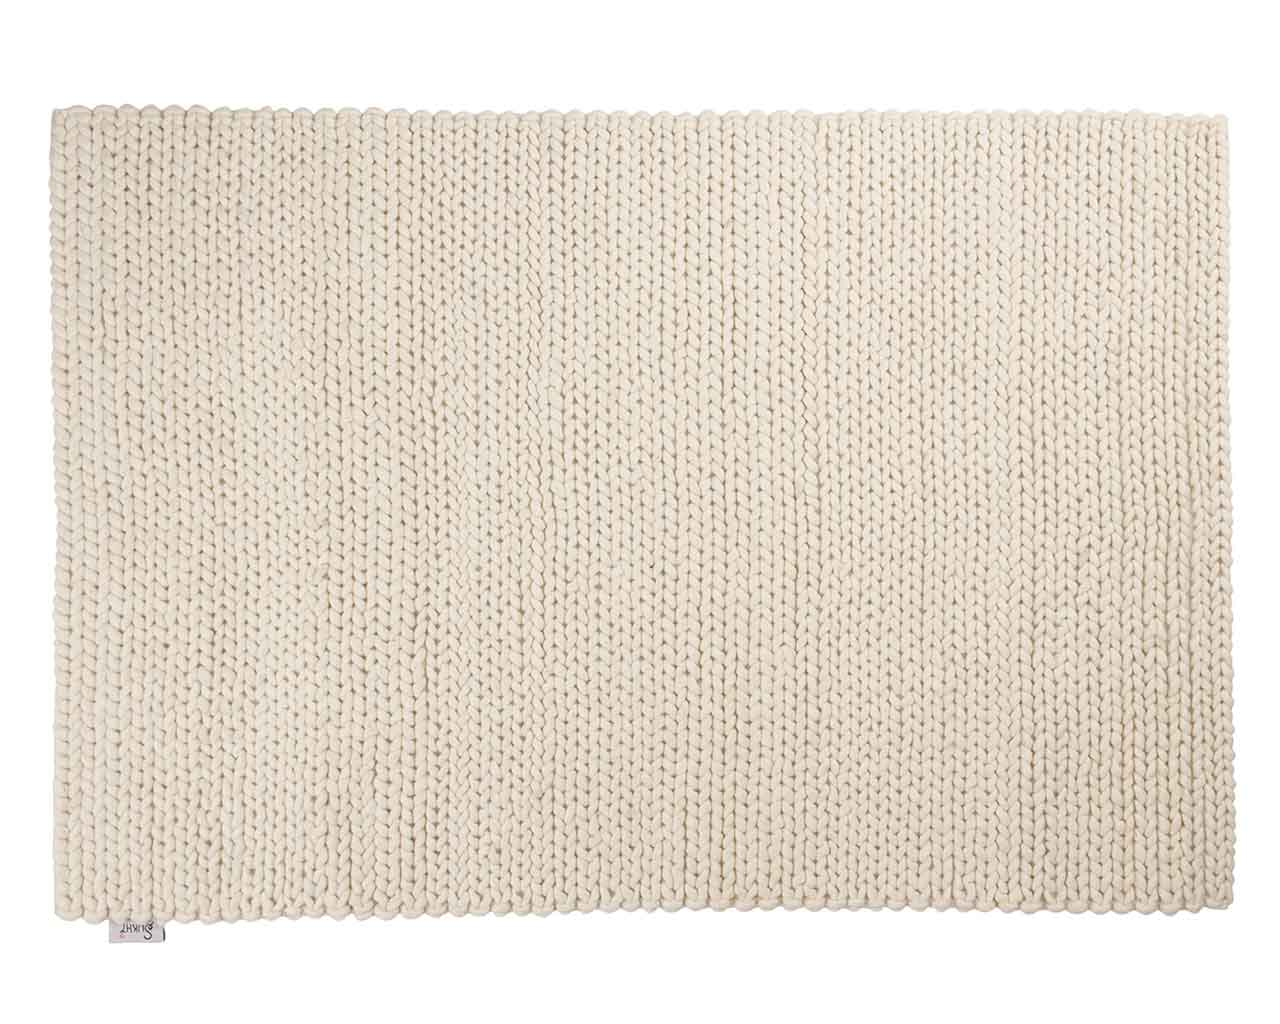 carpet white wool soft for bed room 1